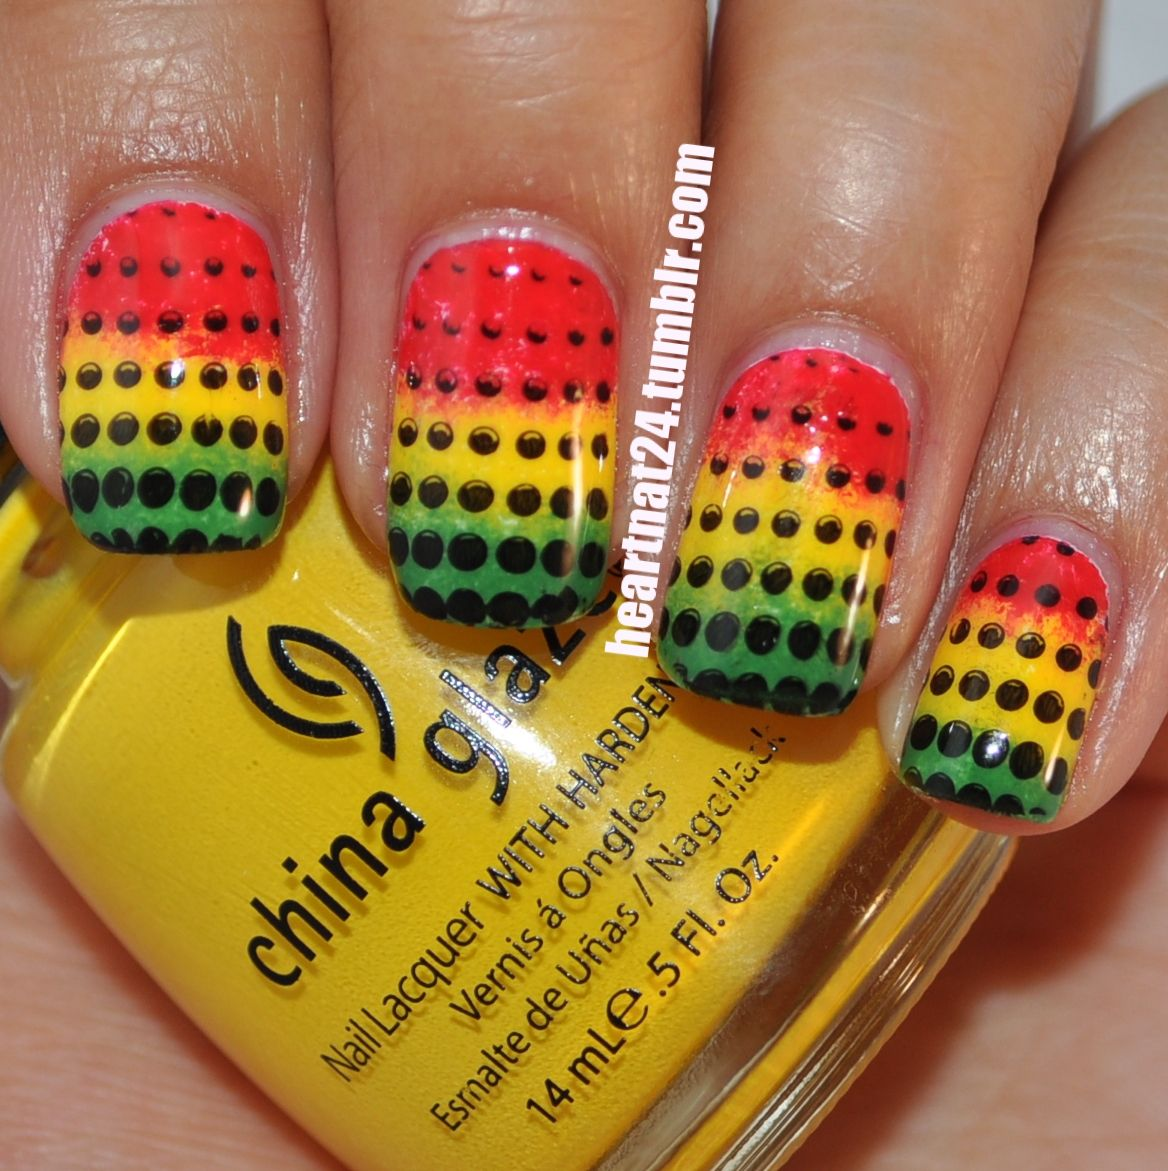 Rastafarian Nails with Black Polka Dots - Rastafarian Nails With Black Polka Dots Nails Pinterest Hair